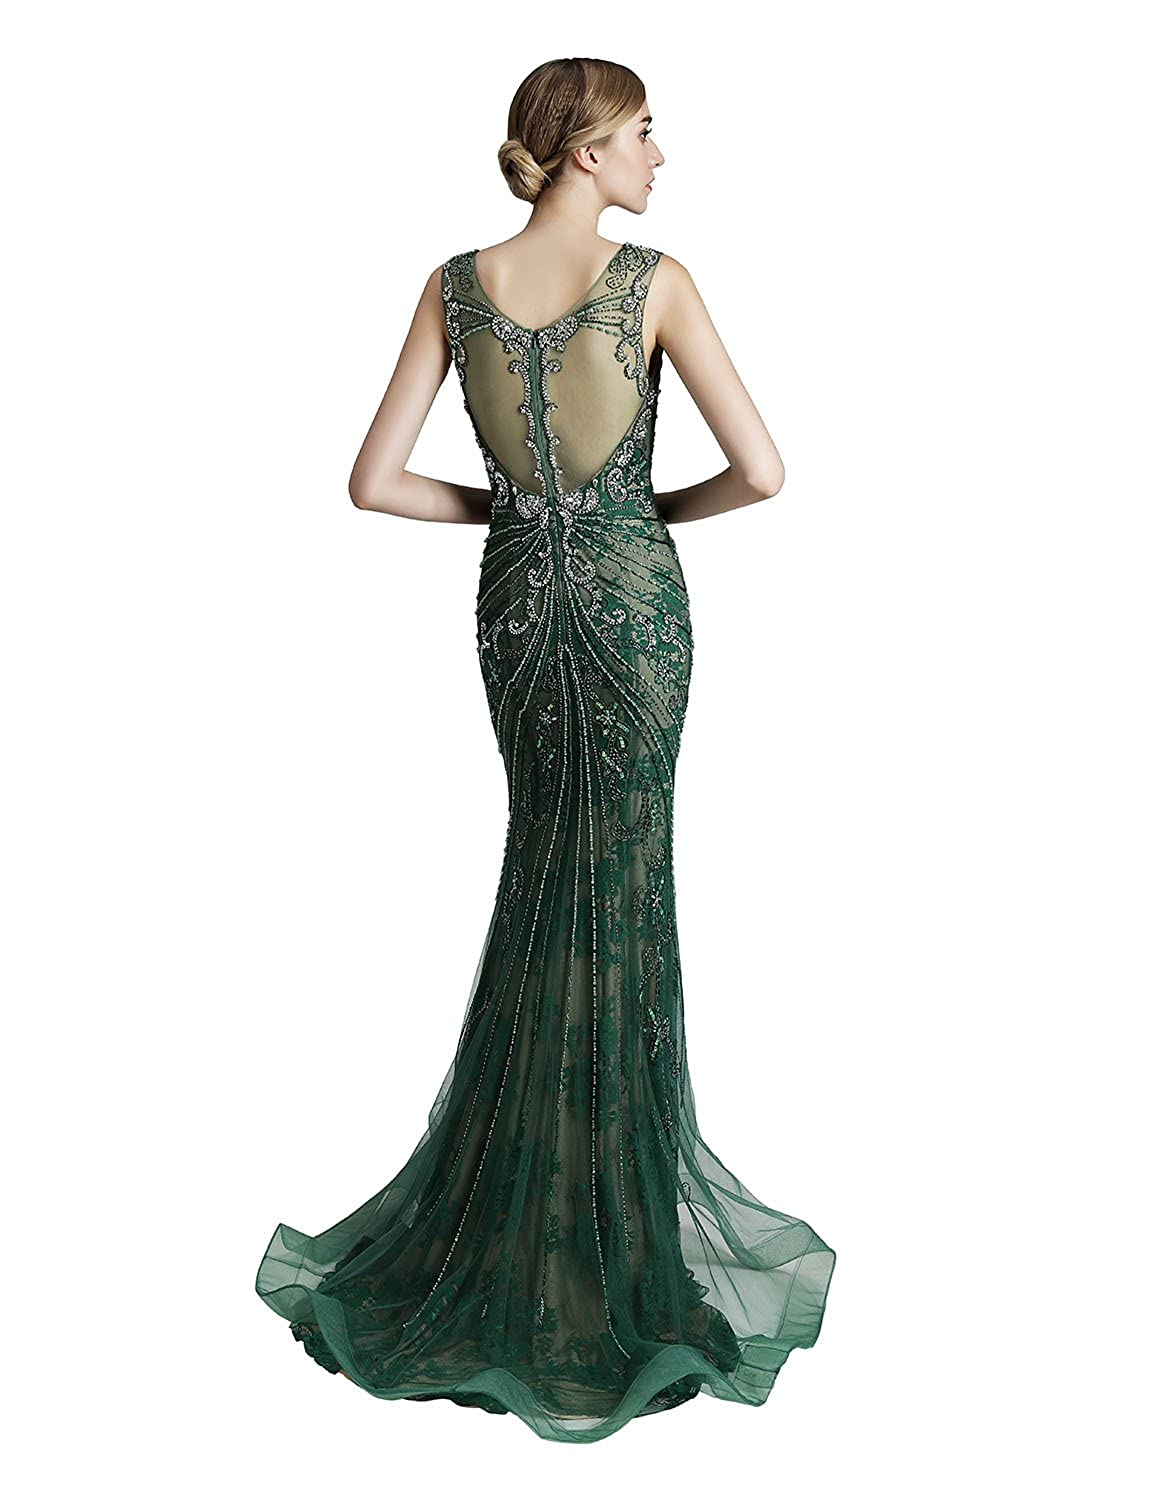 Belle House Womens Long Formal Dresses with Beads Luxury Prom Ball Gown Evening Dress